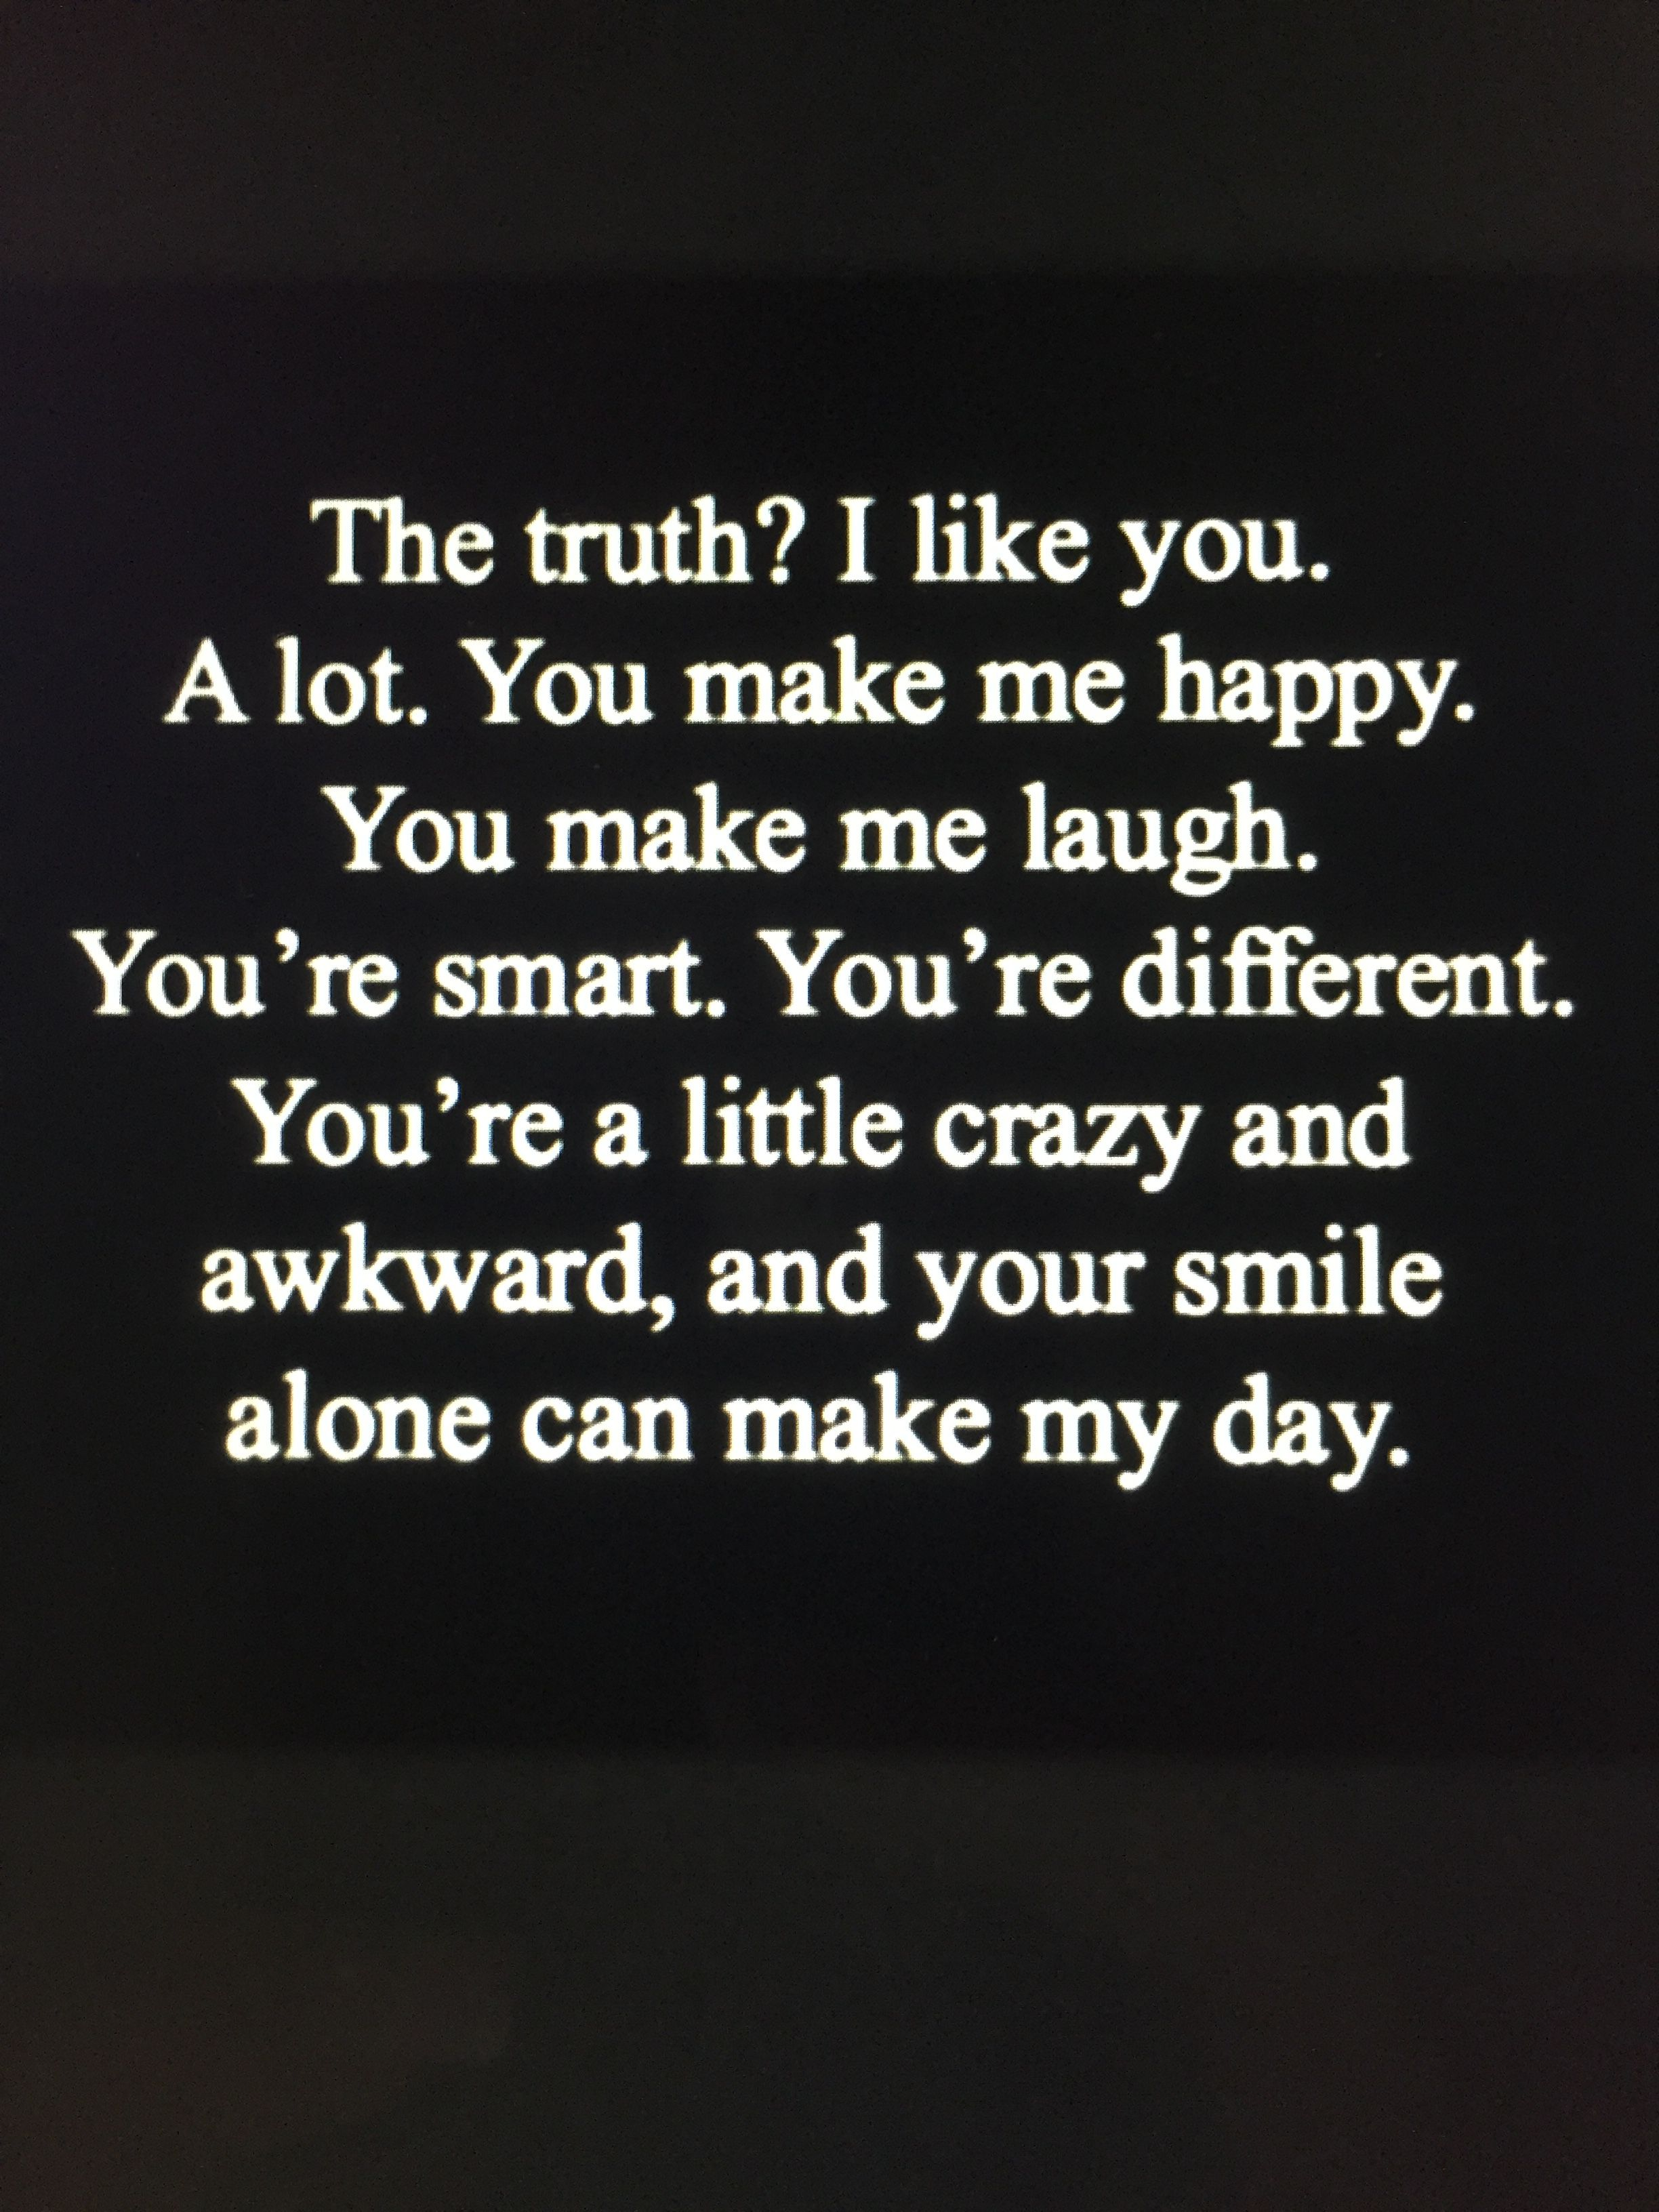 His Smile Is The First Thing I See And It Makes Me Happy Everyday Crazy Love Quotes Friends Quotes Relationship Quotes For Him